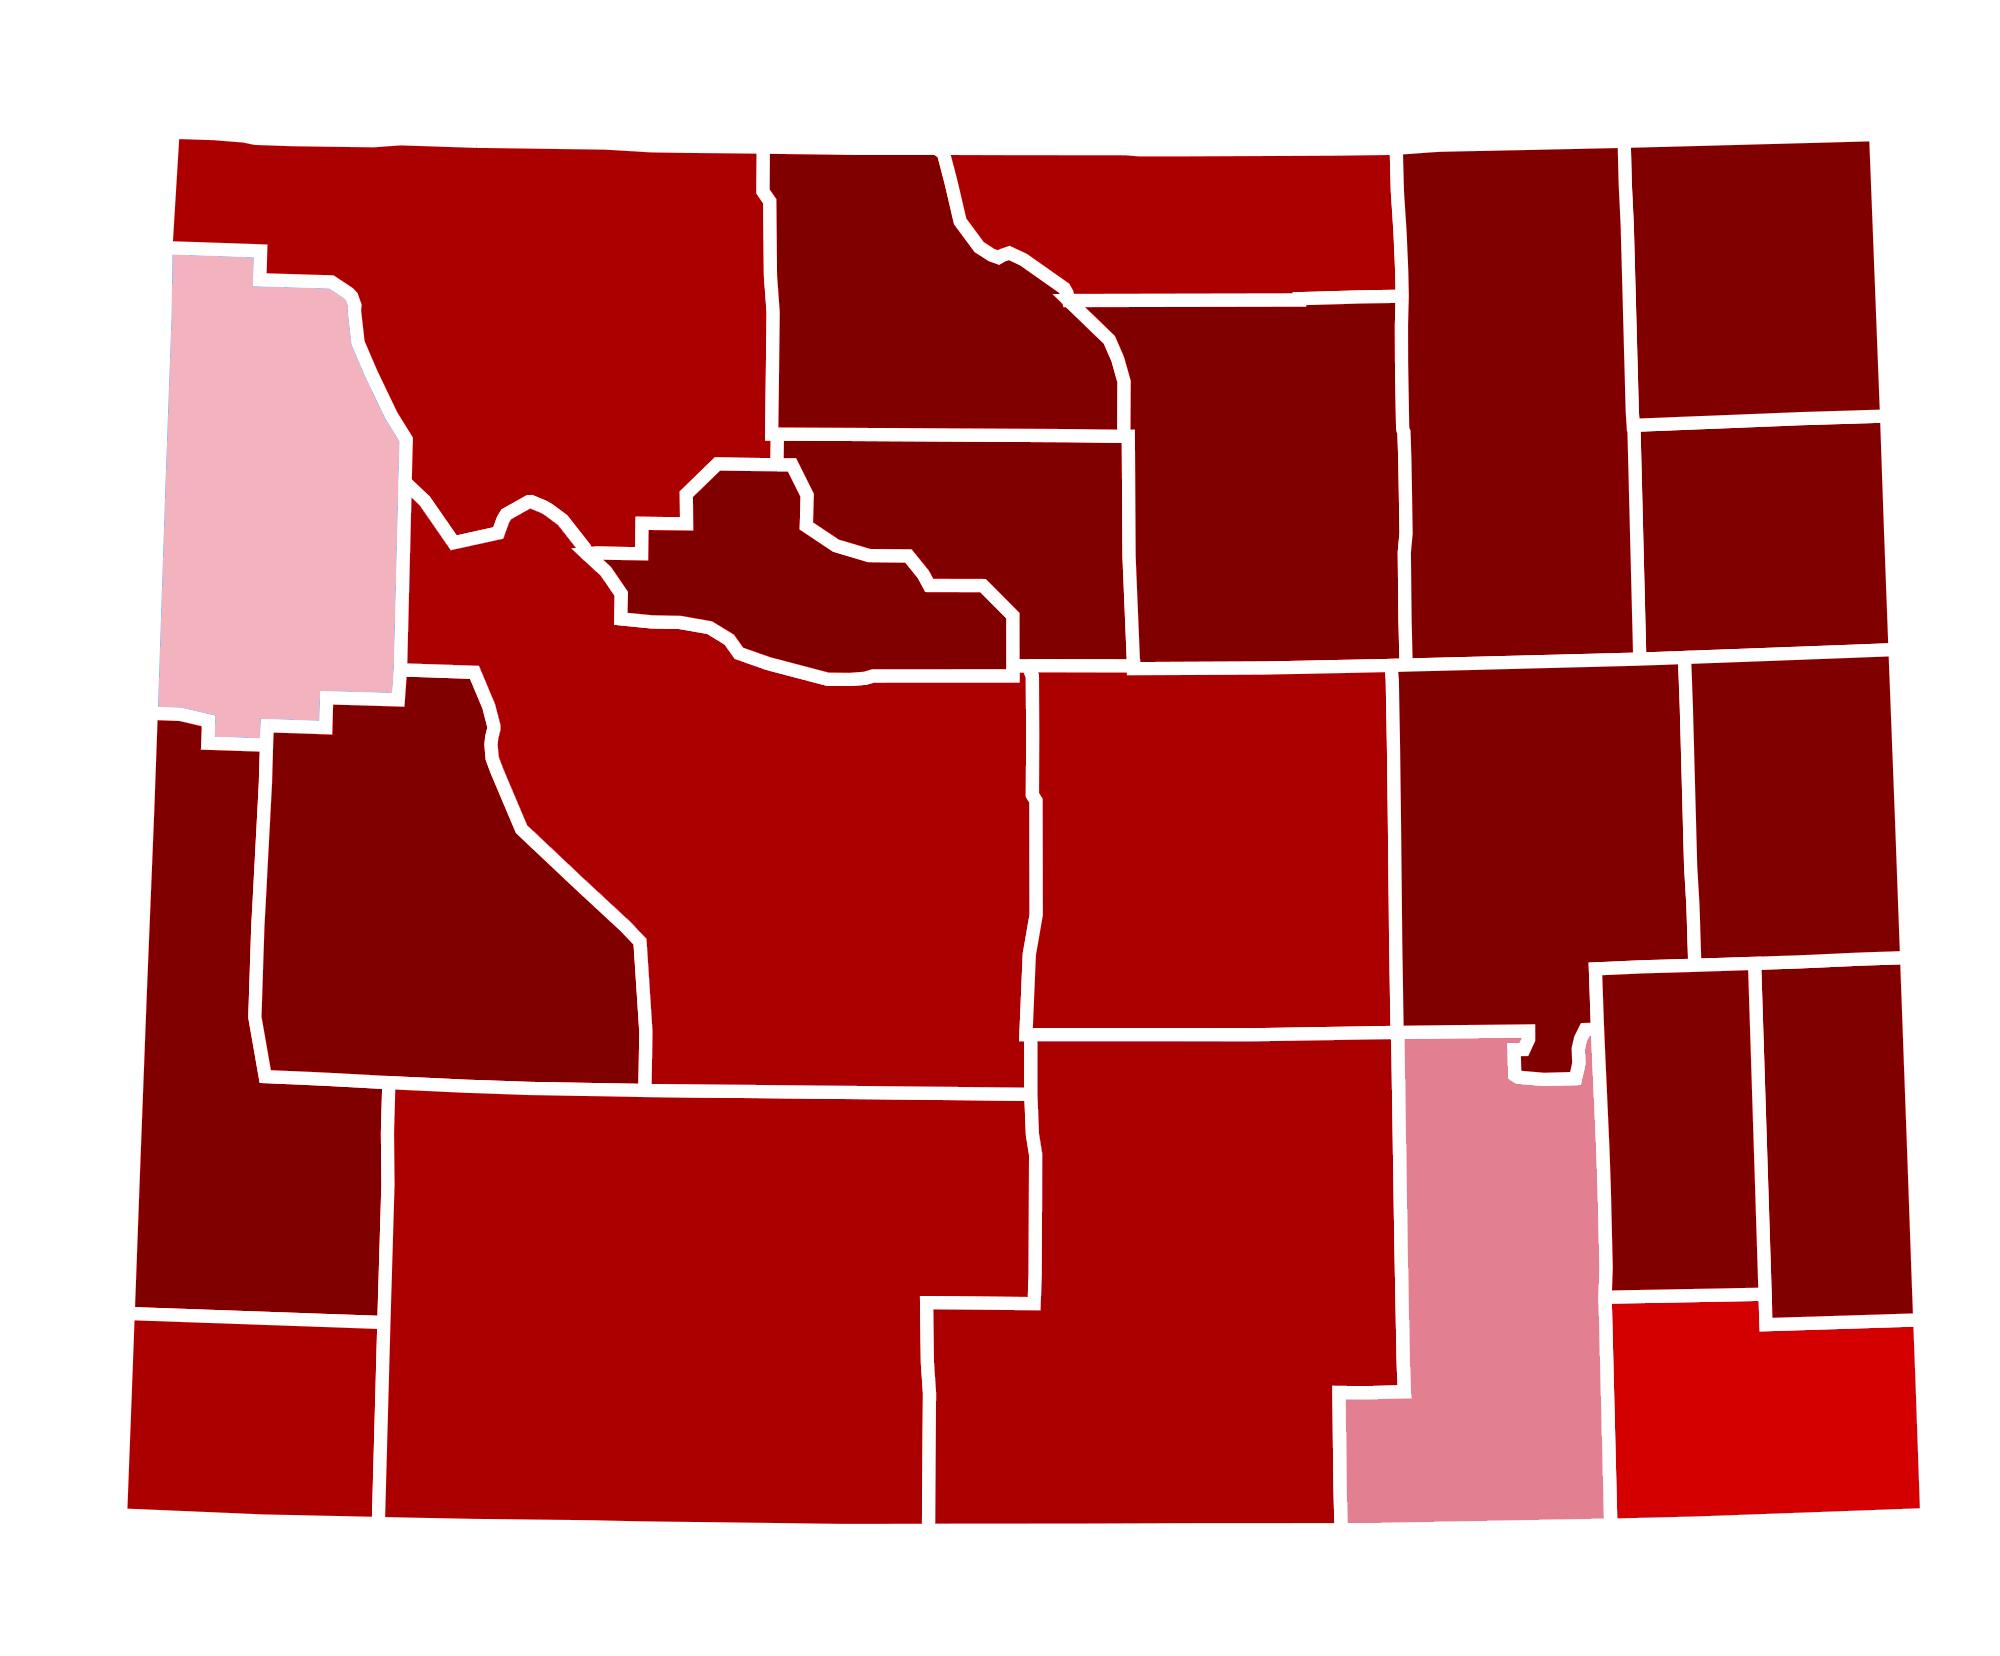 Wyoming_Presidential_Election_Results_2016_Republican_Landslide_15.06%.png